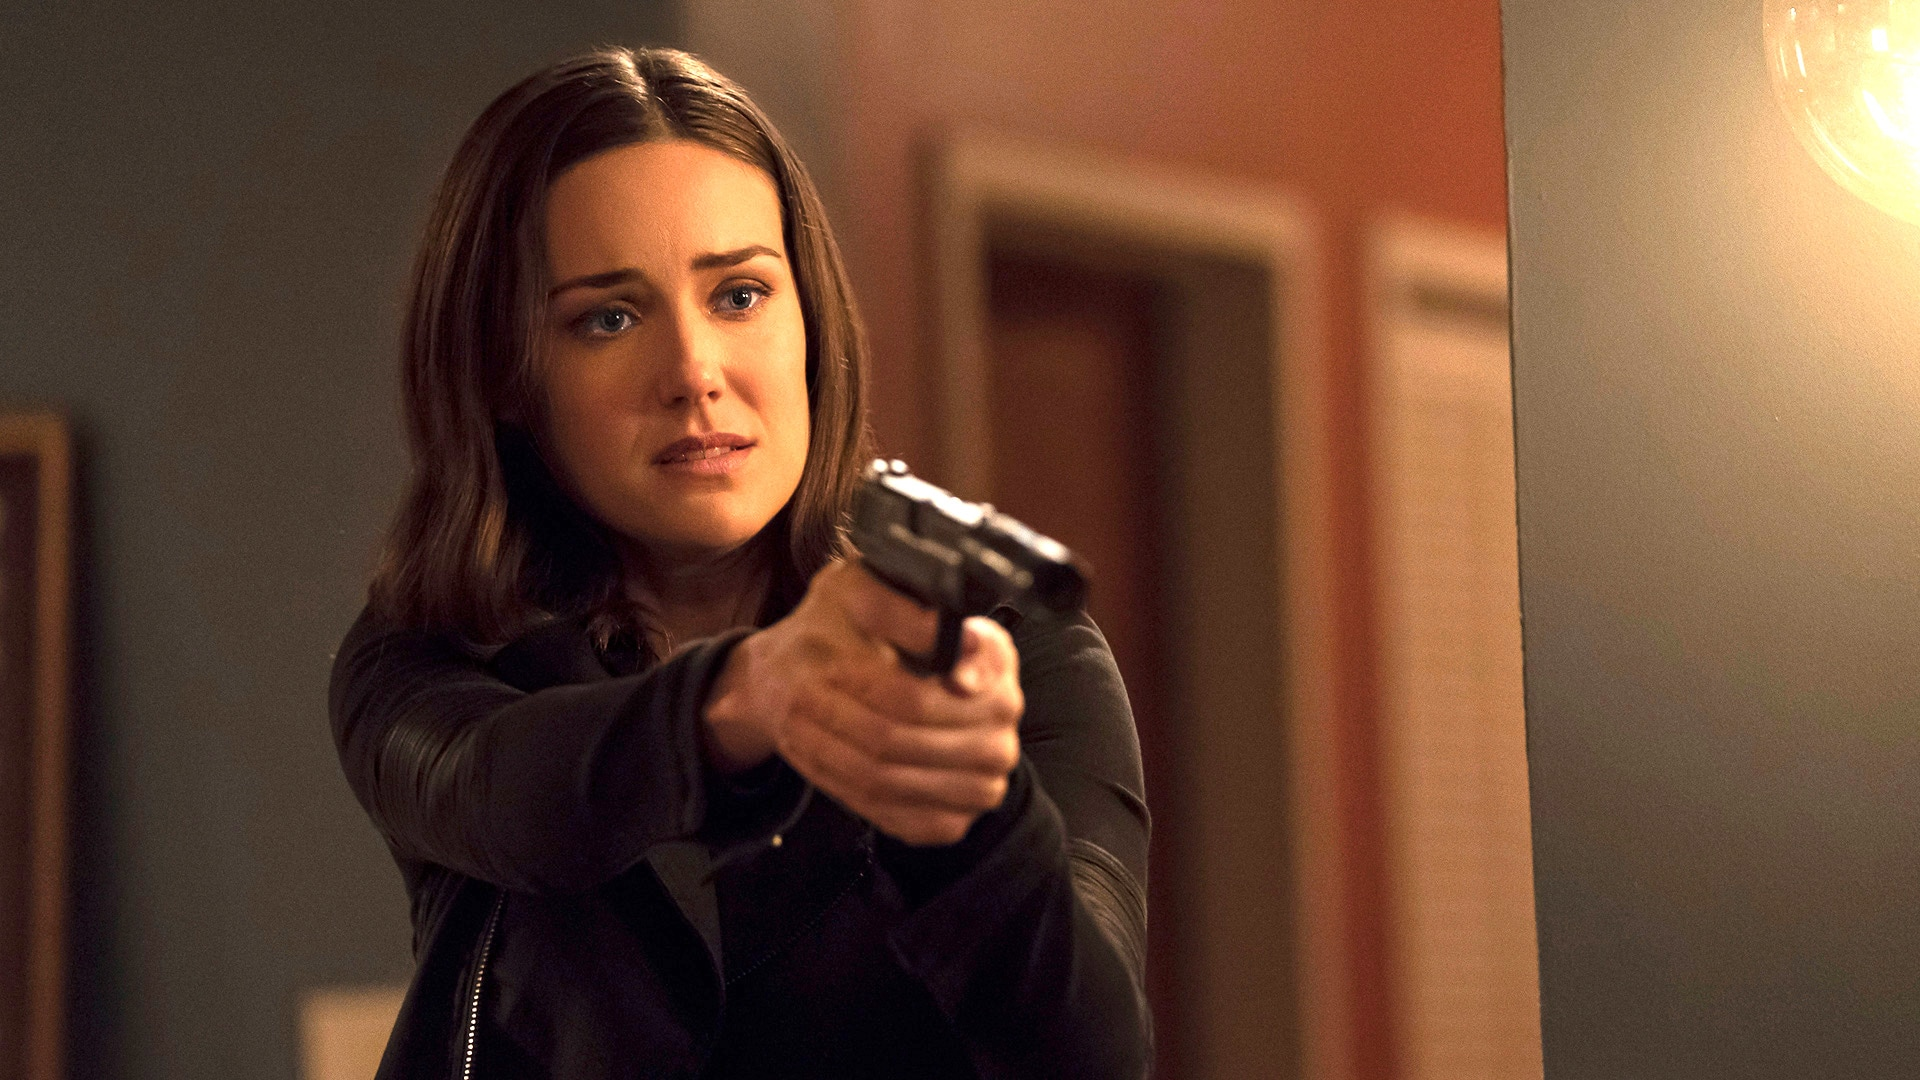 Watch The Blacklist Episode: Orion Relocation Services ...